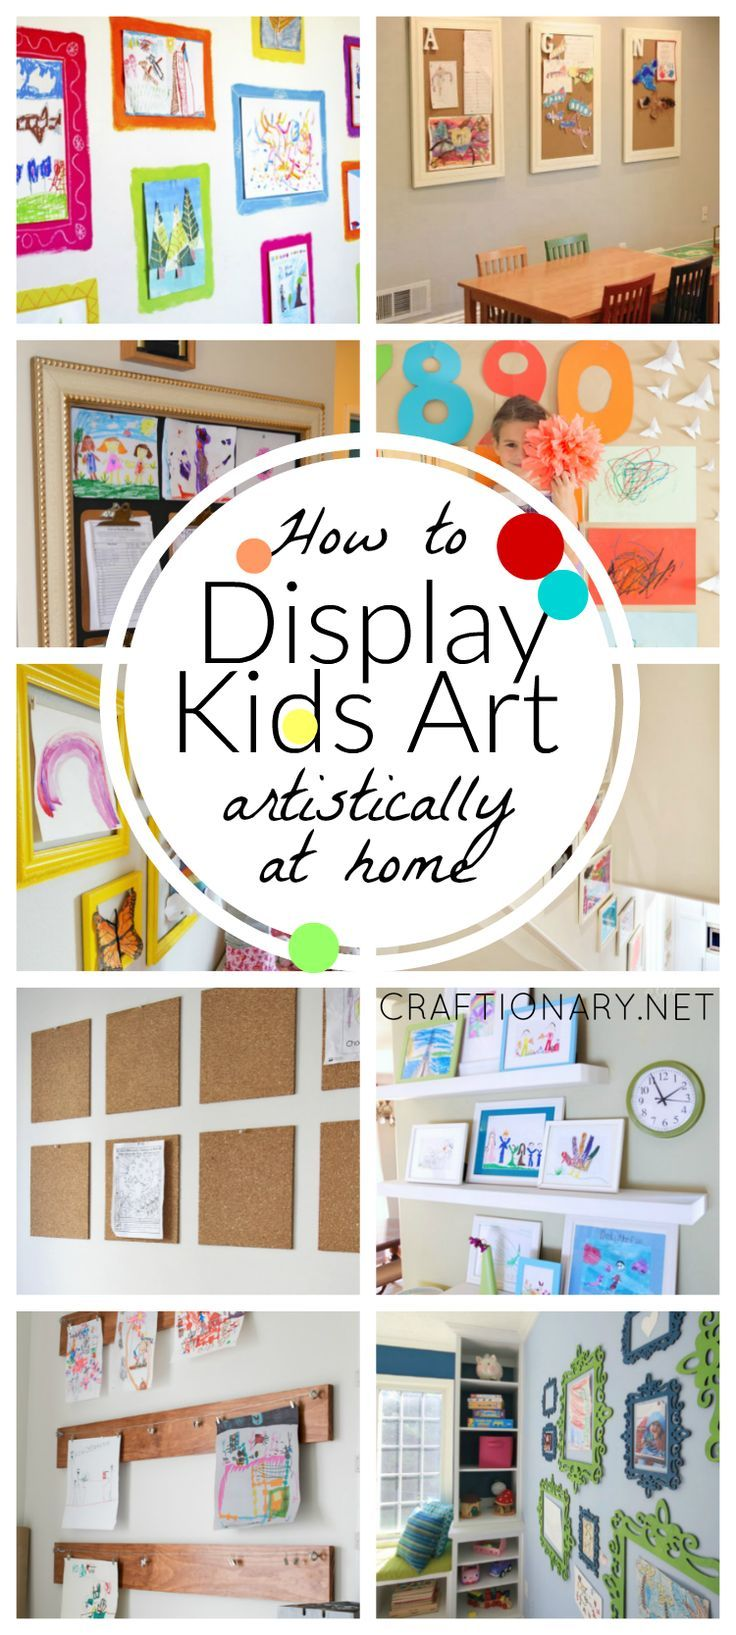 great ideas for displaying kids art at home i tend to throw away as much